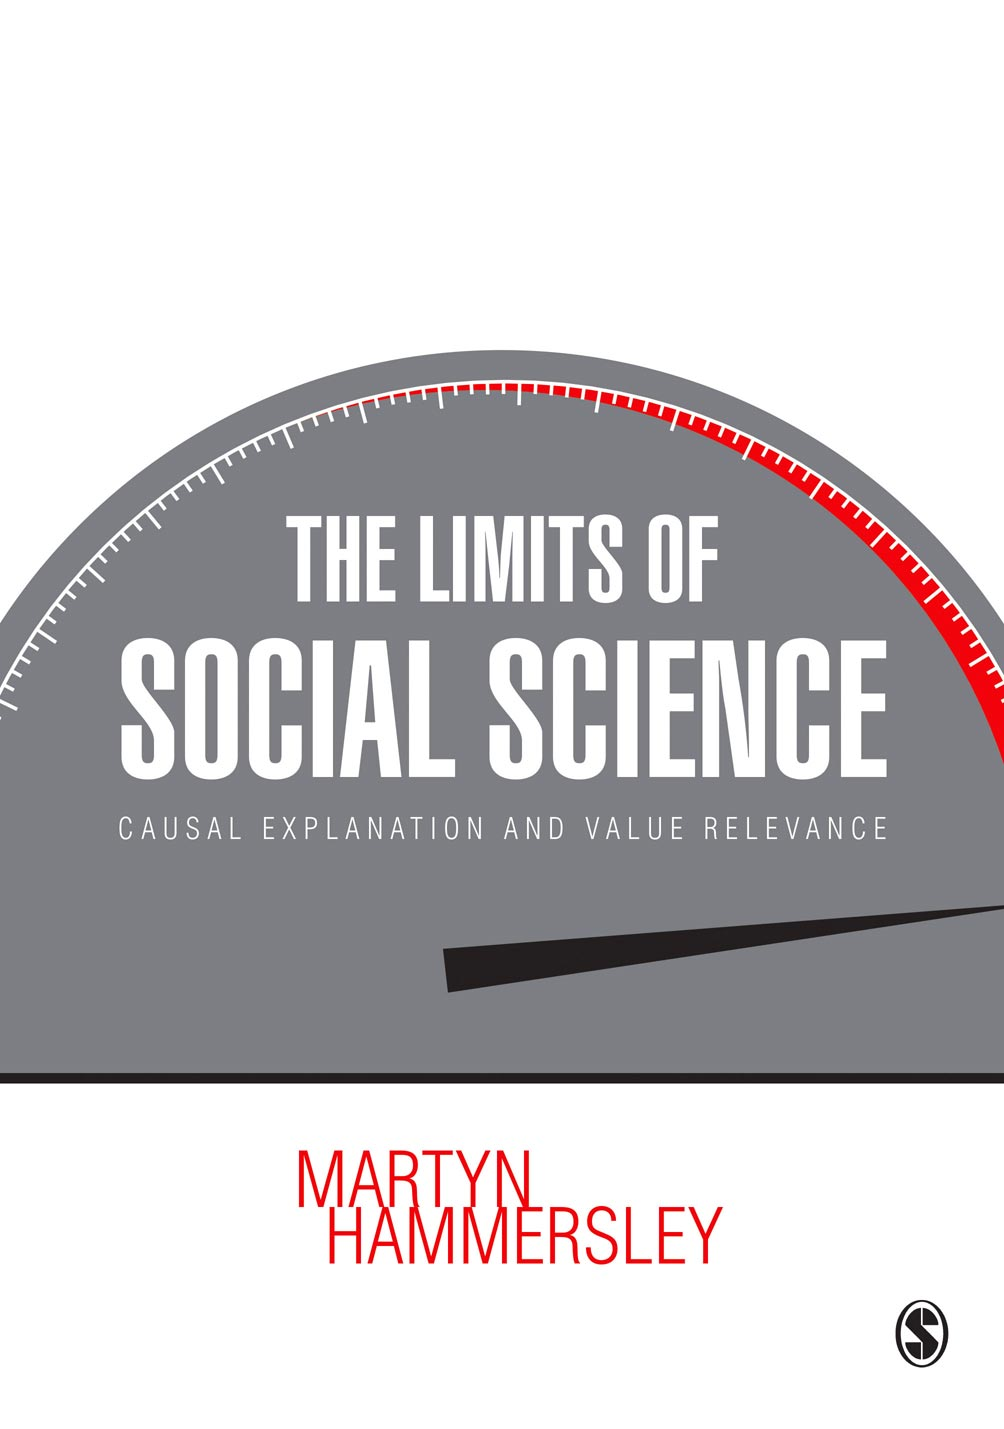 The Limits of Social Science Causal Explanation and Value Relevance